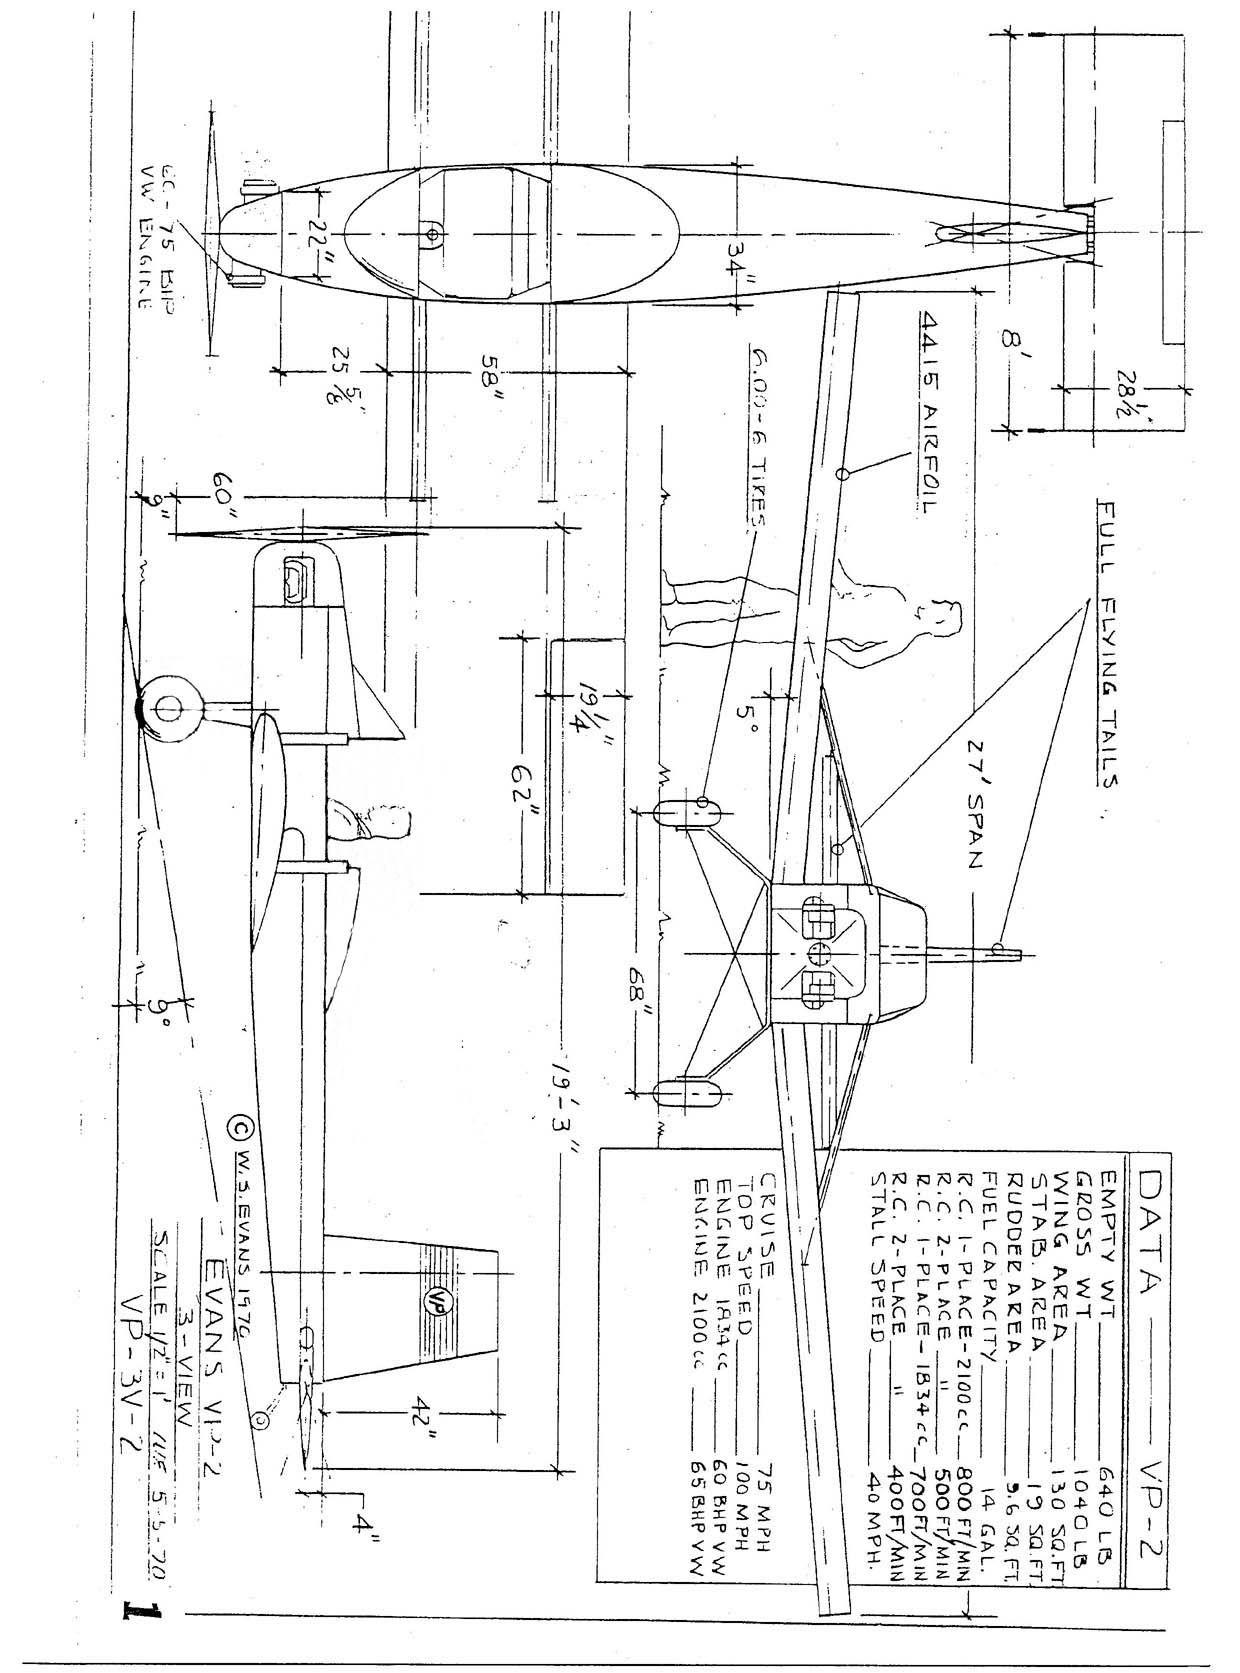 9 Homebult Experimental Aircraft With Pictures and Plans